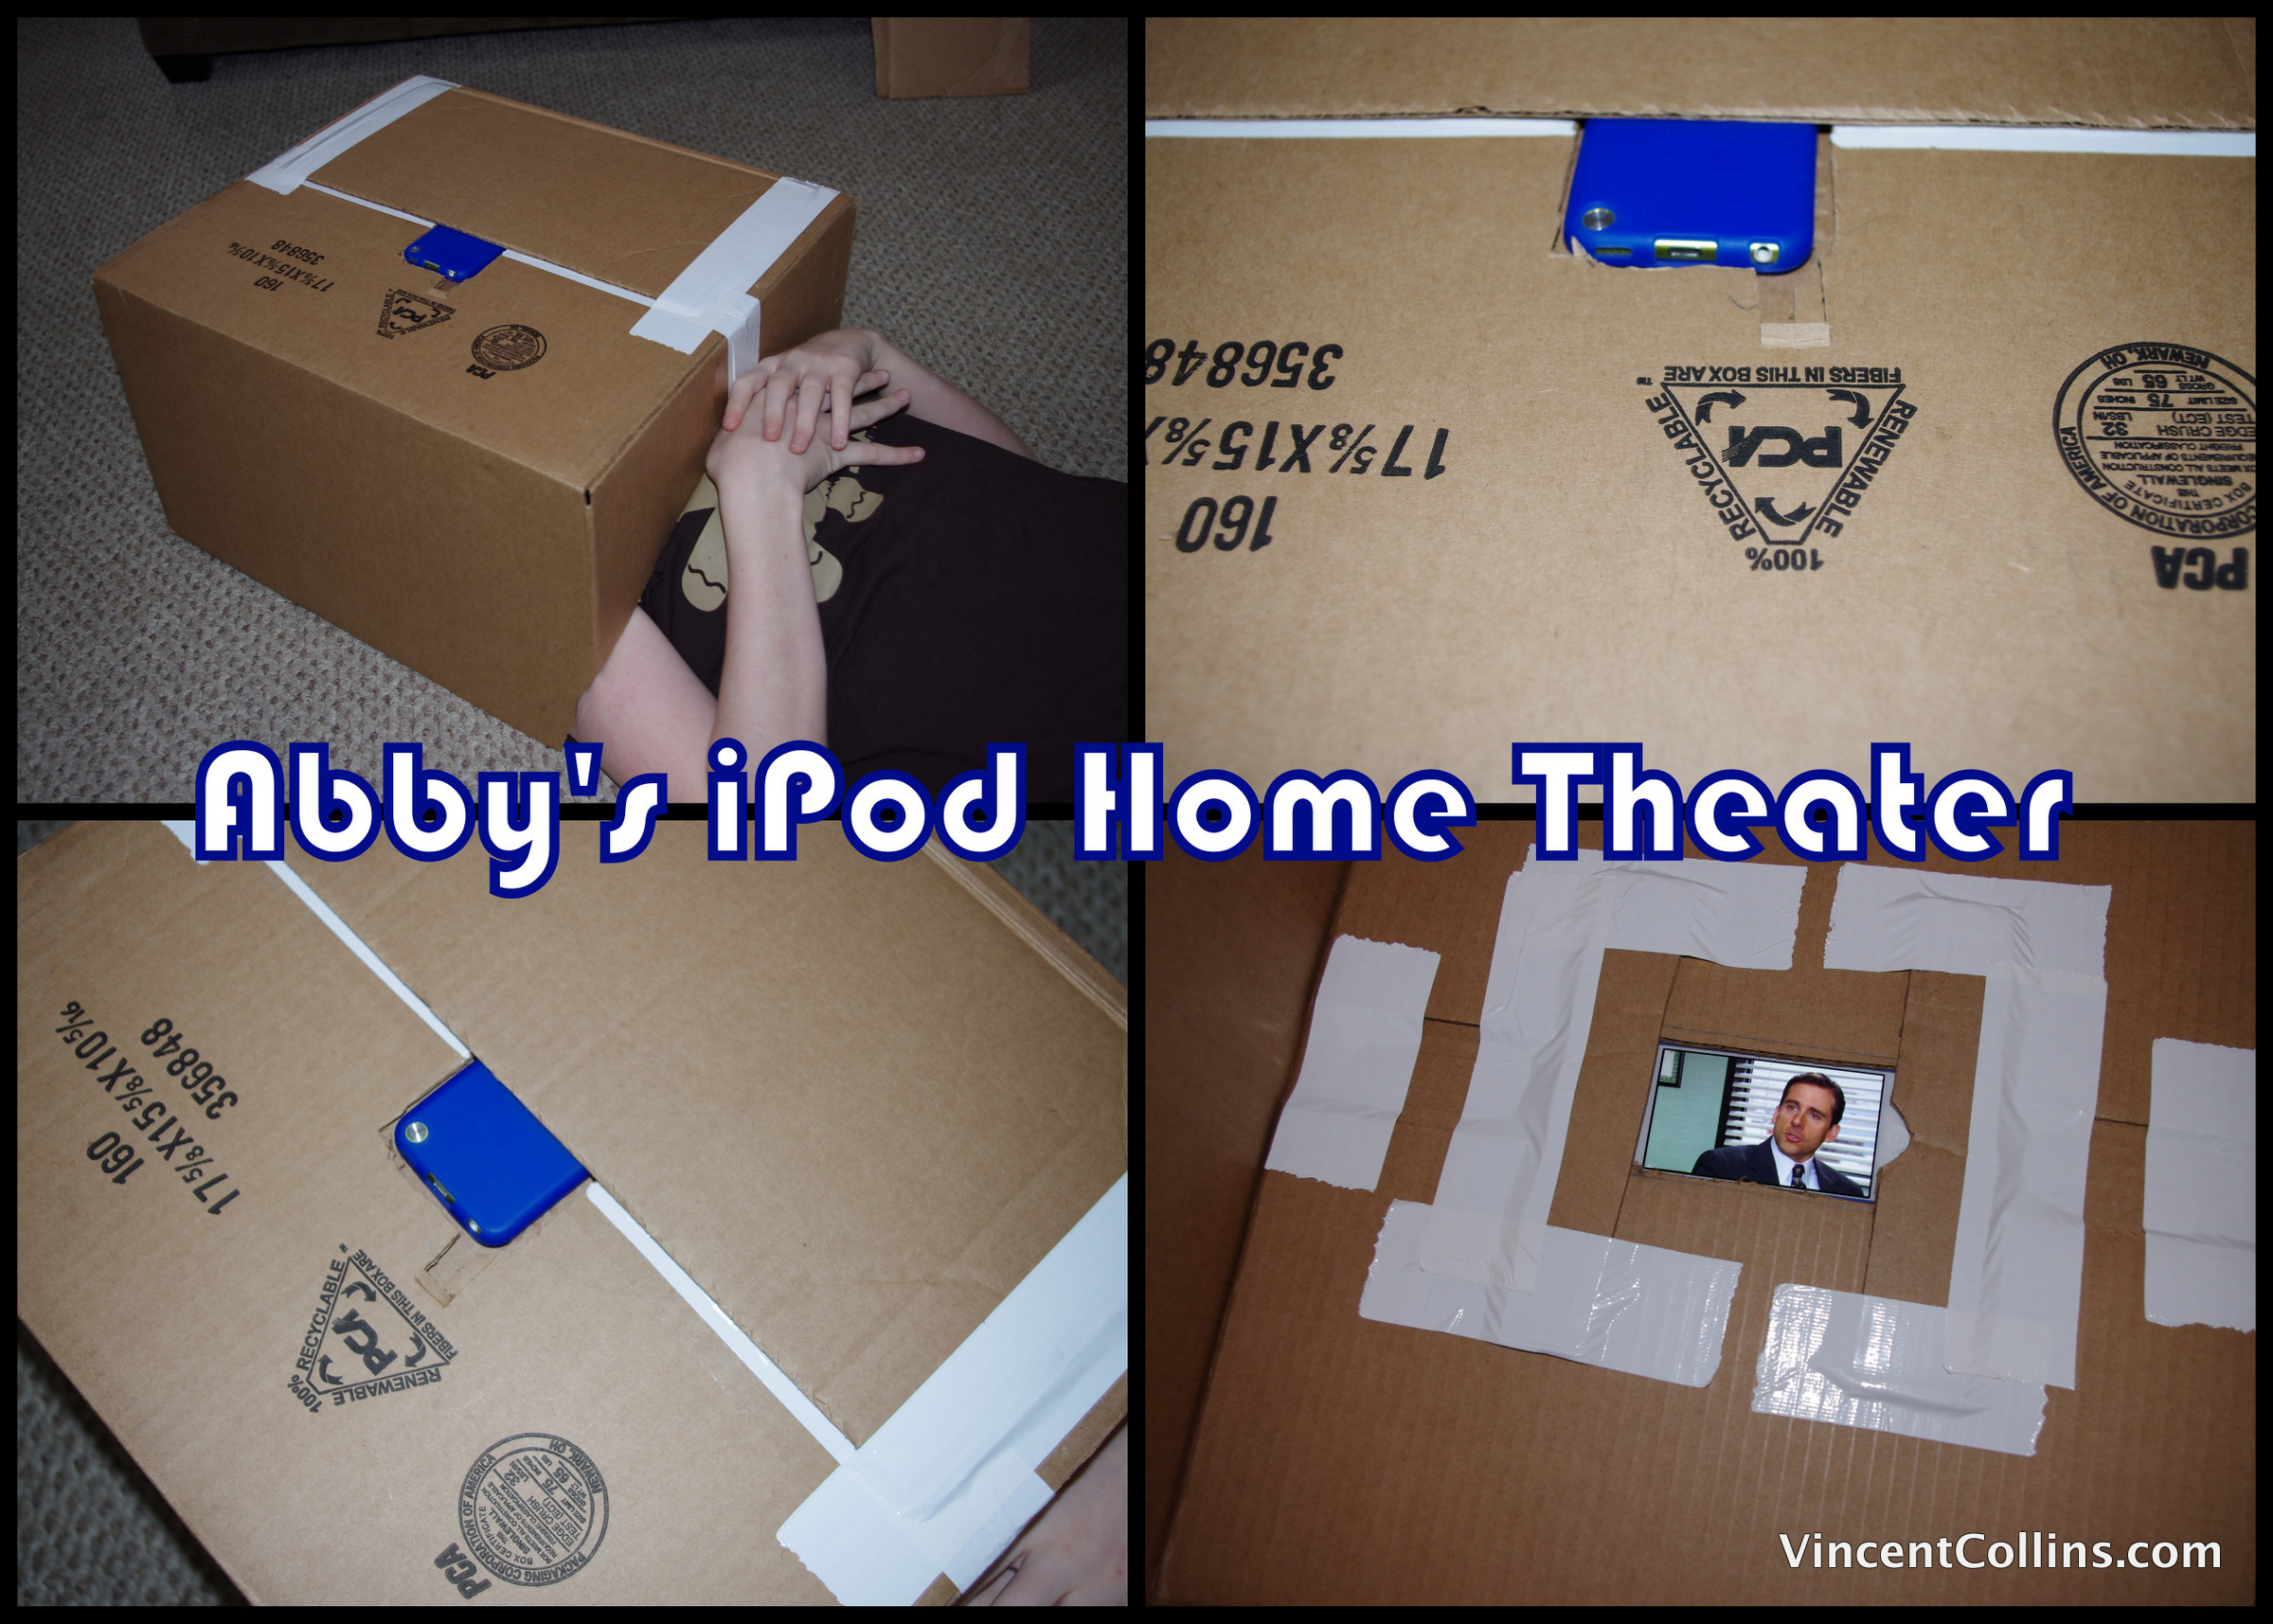 Abby's Cardboard iPod Home Theater